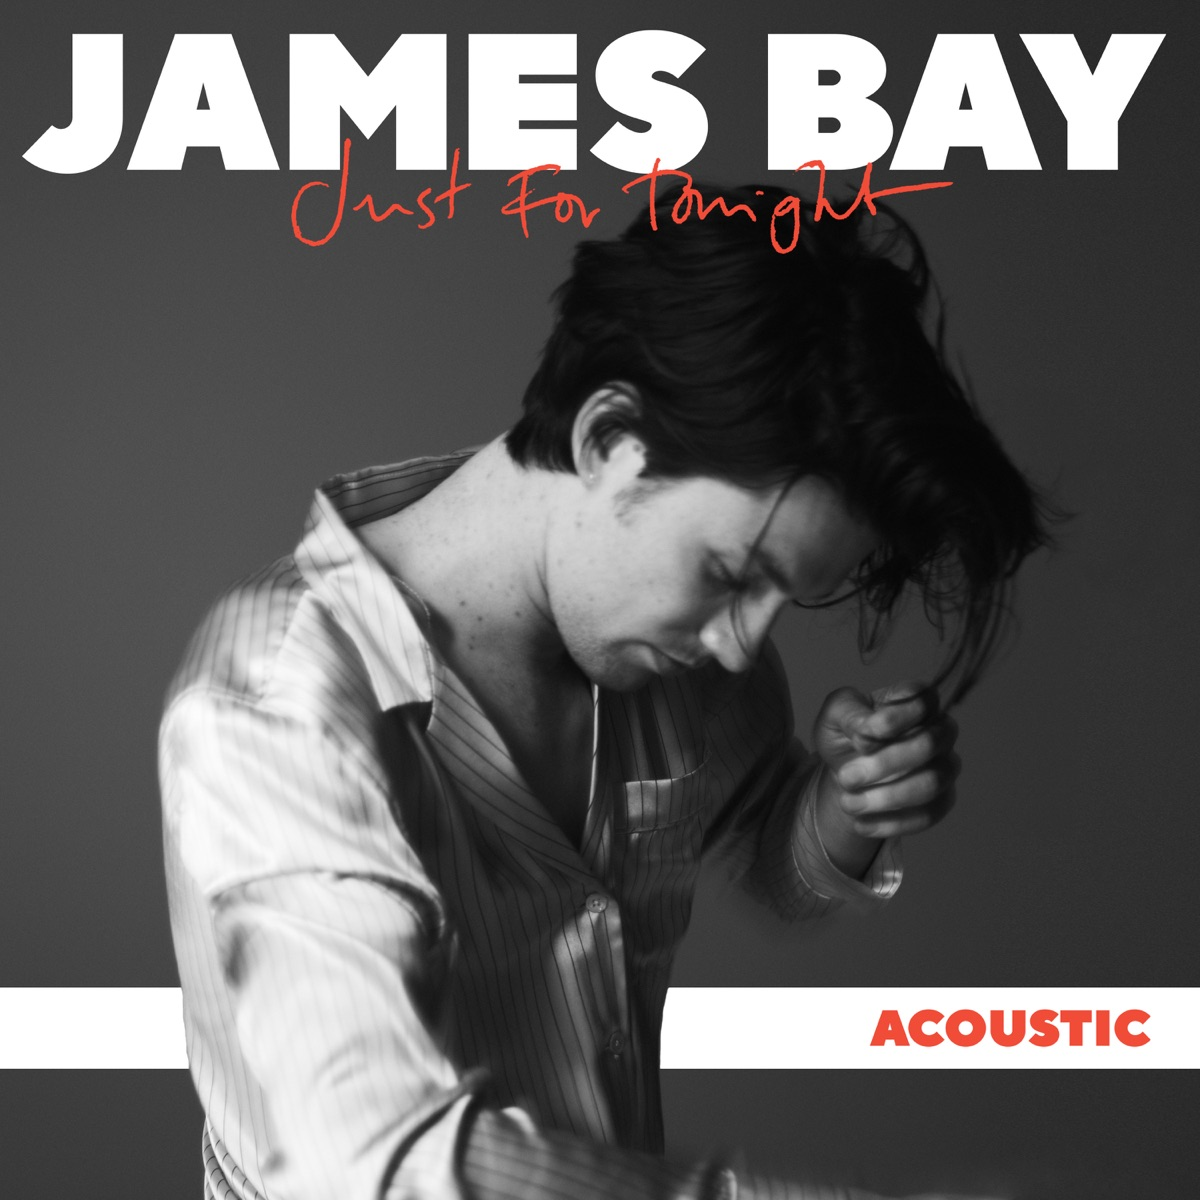 Just for Tonight Acoustic - Single James Bay CD cover